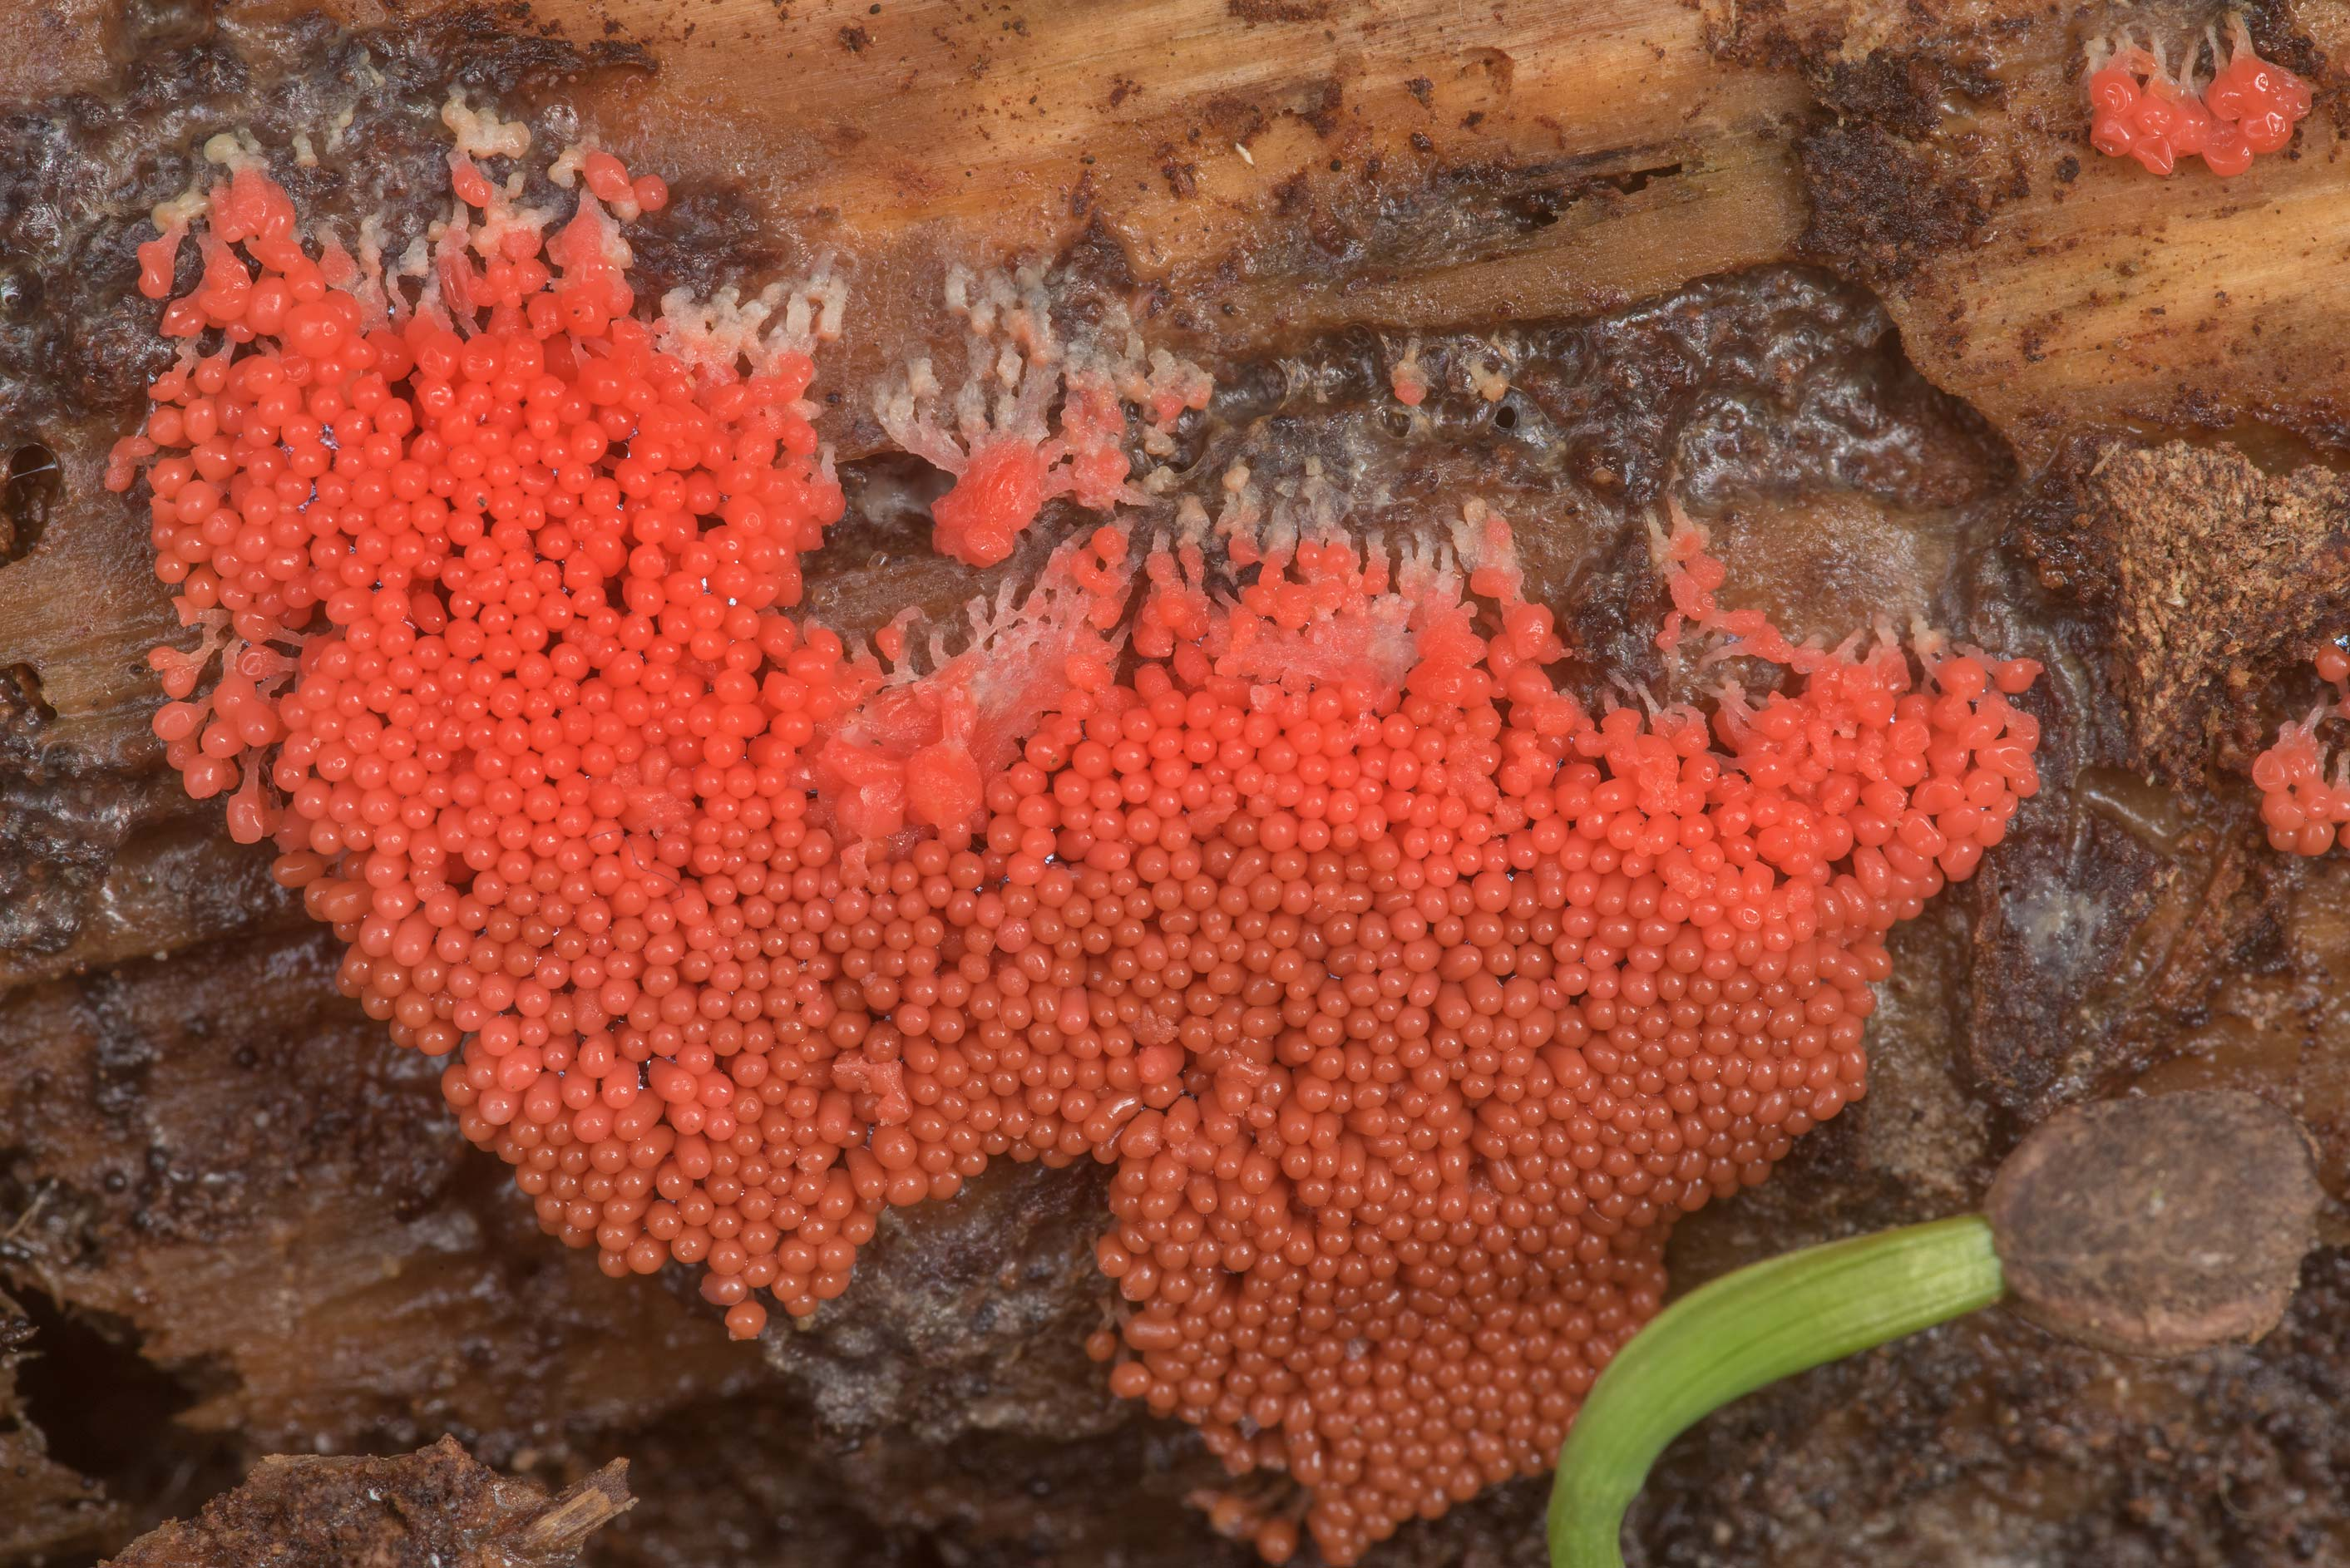 Close-up of bright red slime mold Arcyria...National Forest near Huntsville. Texas